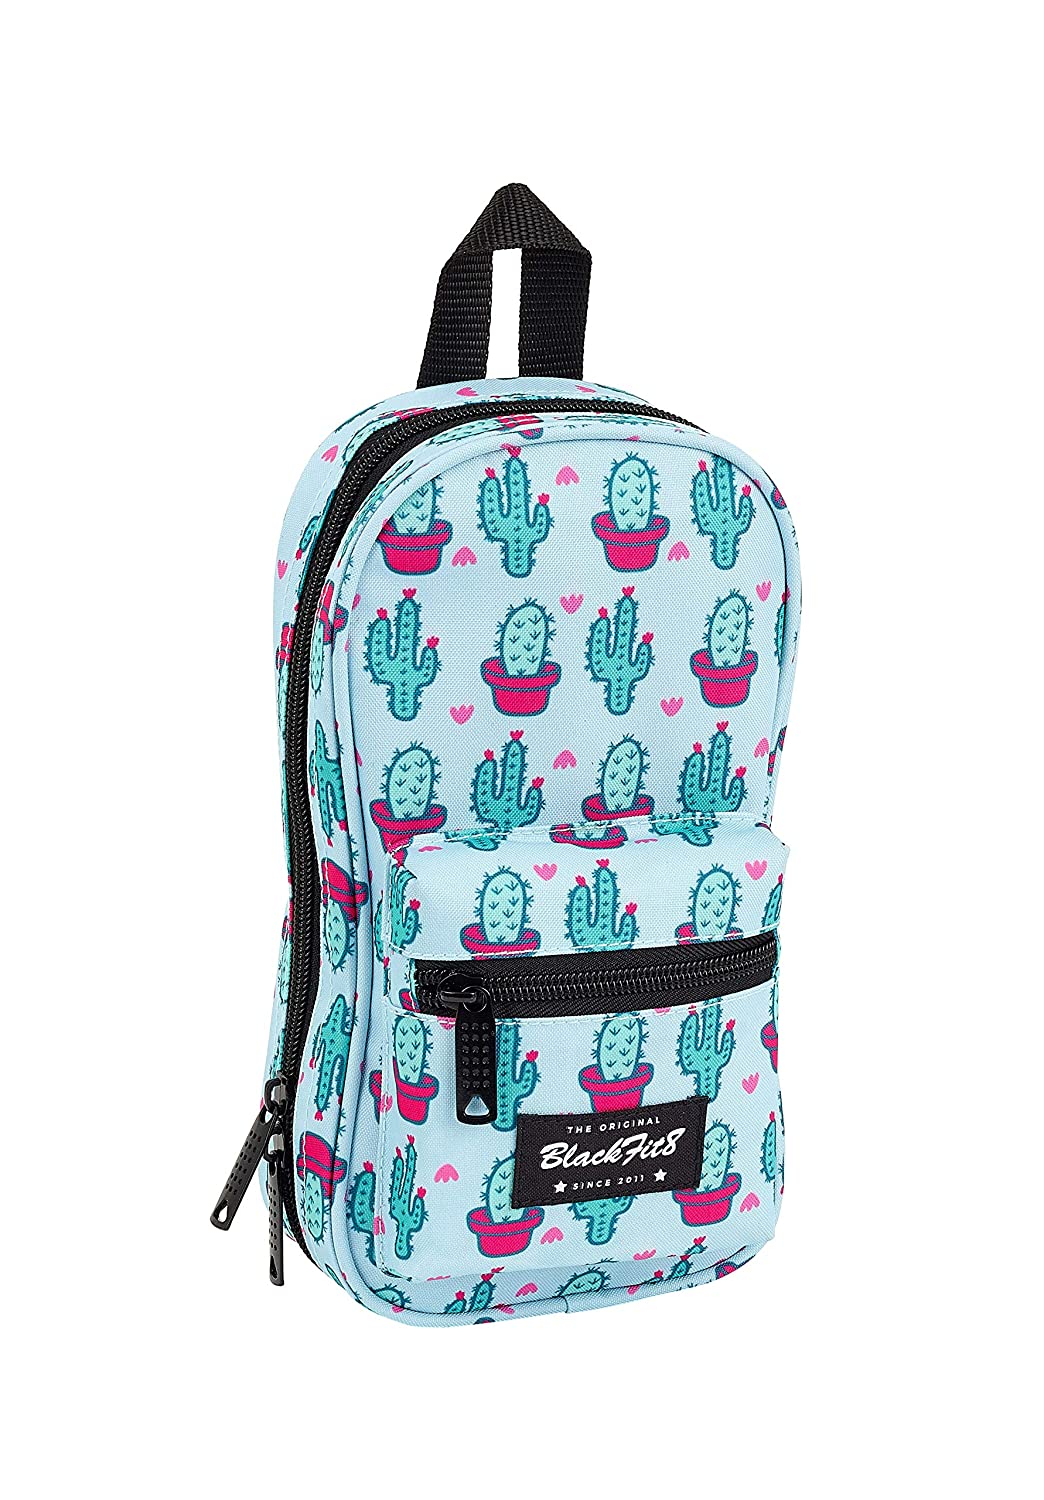 Amazon.com: Cactus Official Blackfit8 Toiletry Bag with 4 ...